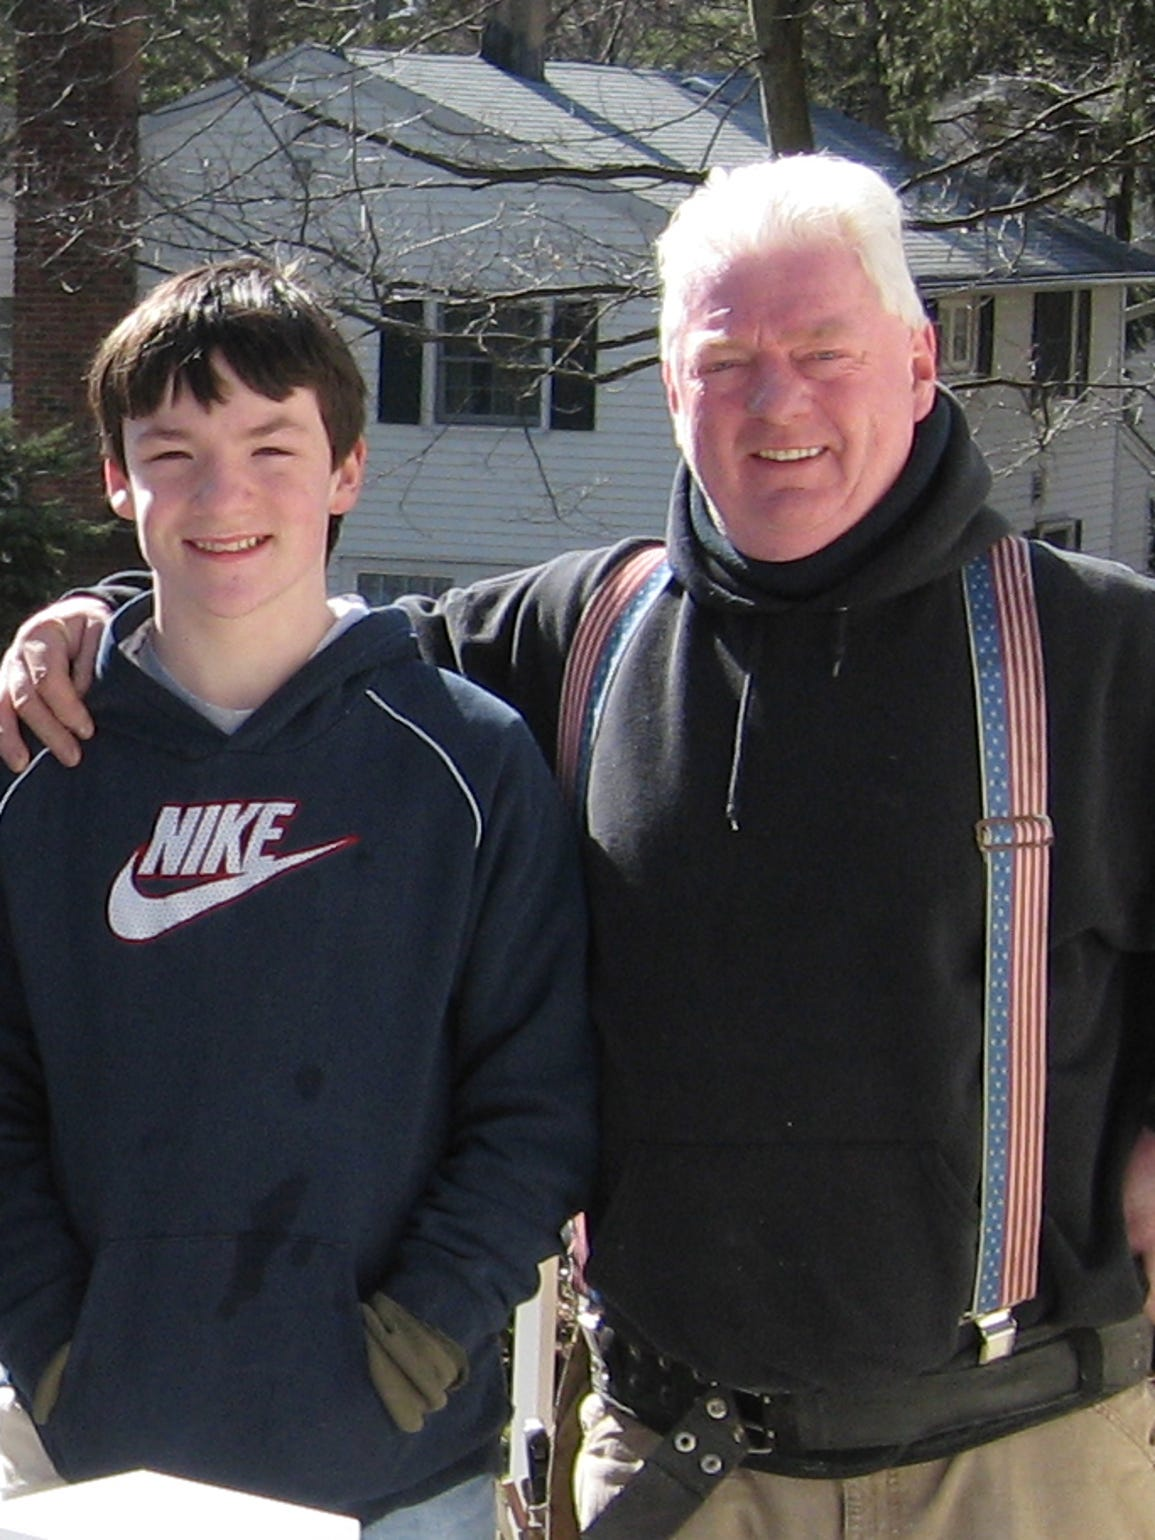 Jim Fisher with his son Sean, who died of sudden cardiac